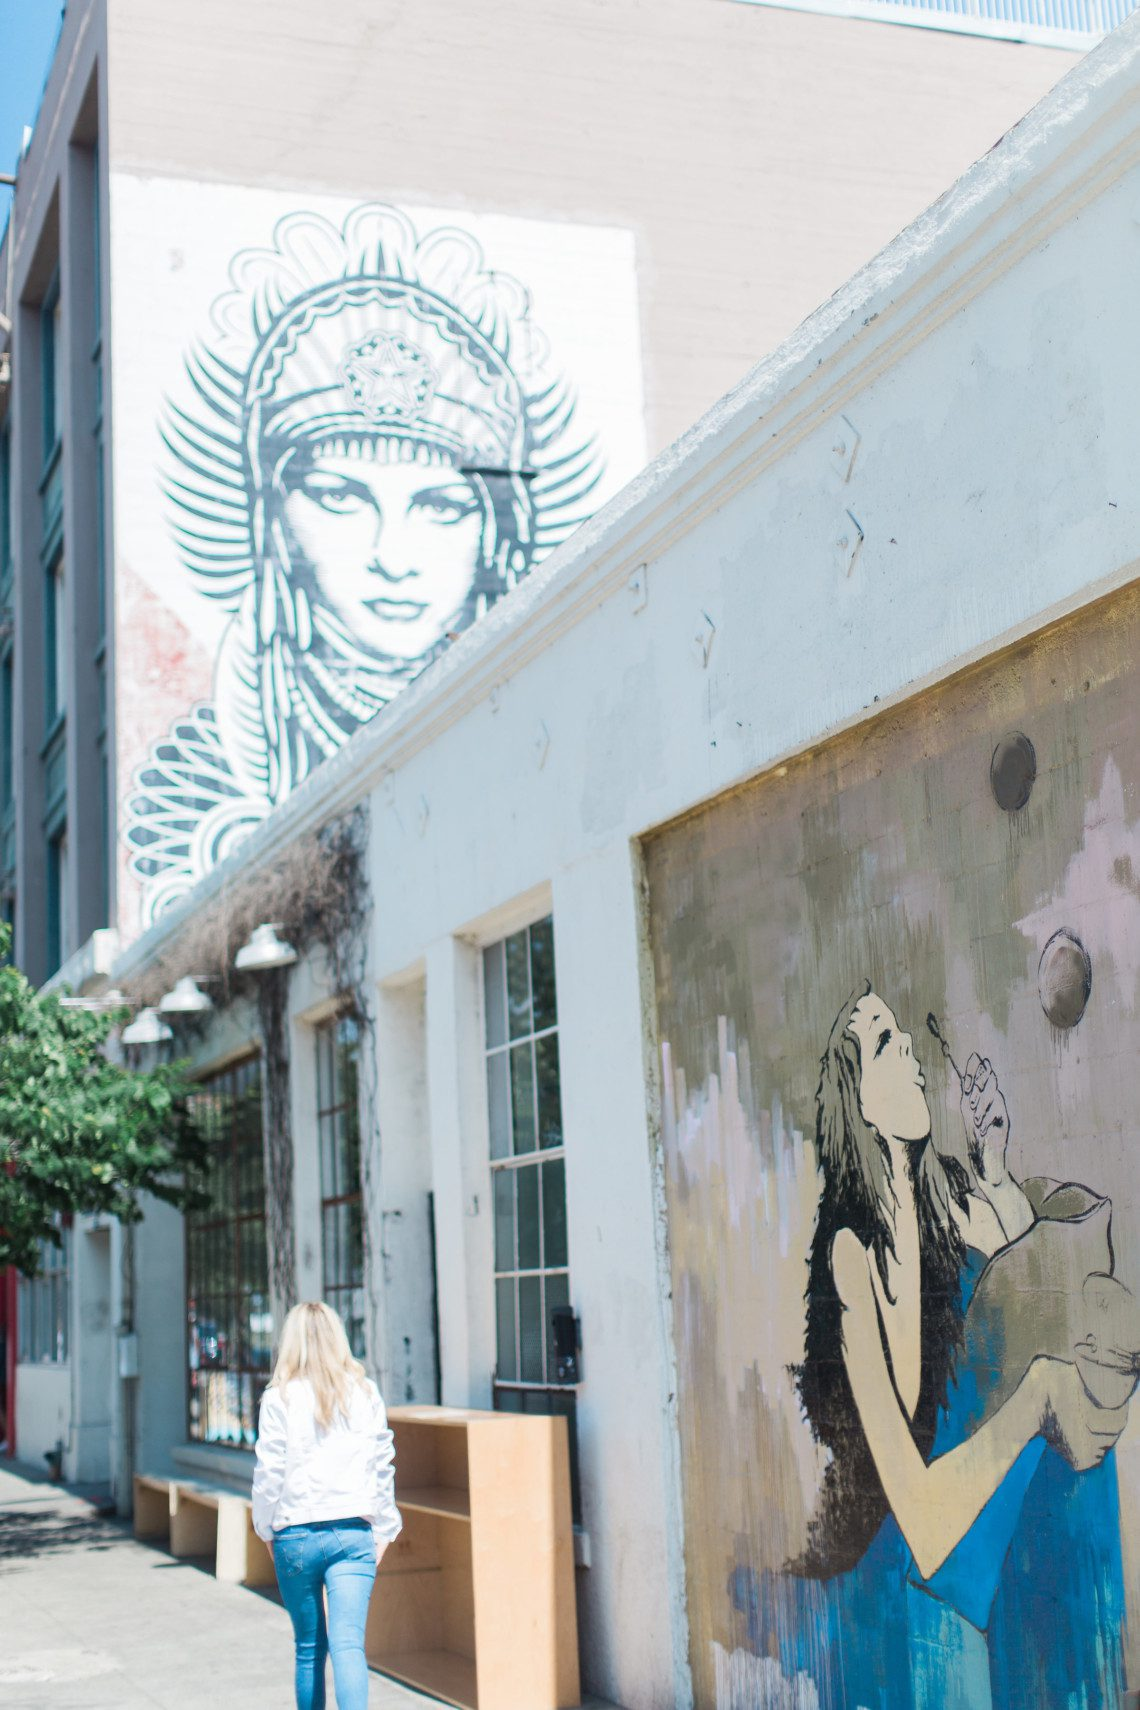 A local guide to the Los Angeles arts district